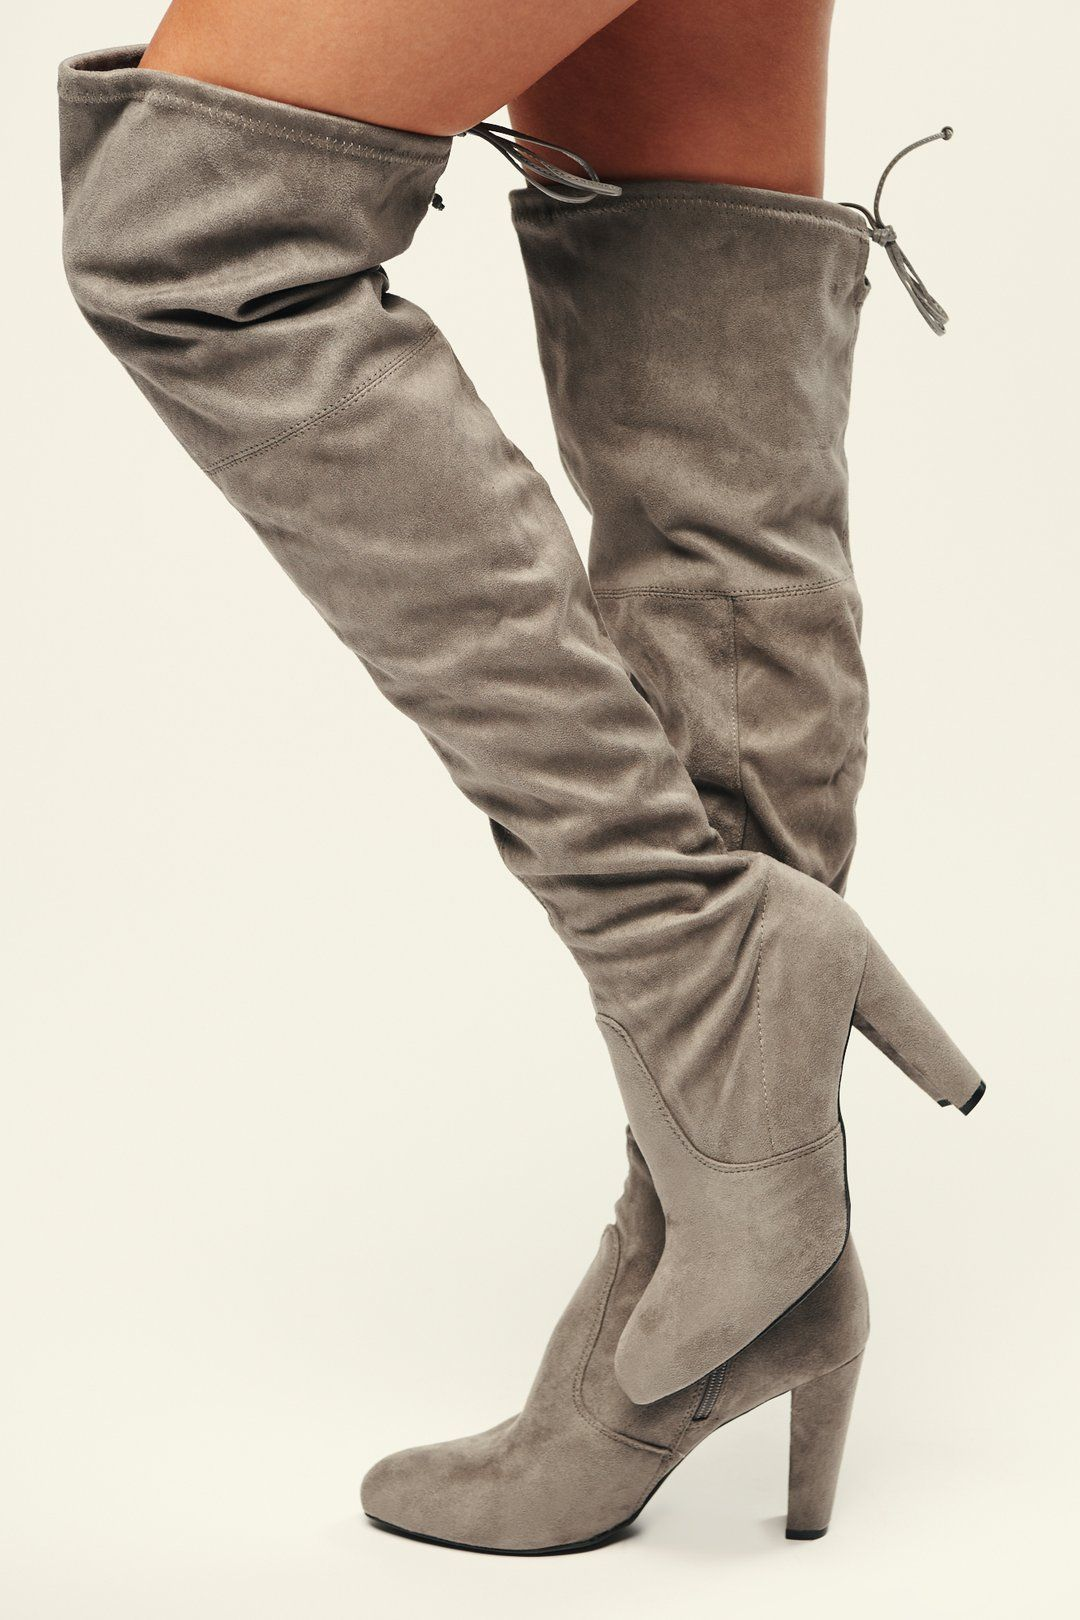 Call Me Faux Suede Thigh High Boots Grey Faux Suede Thigh High Boots Thigh High Suede Boots Thigh High Boots